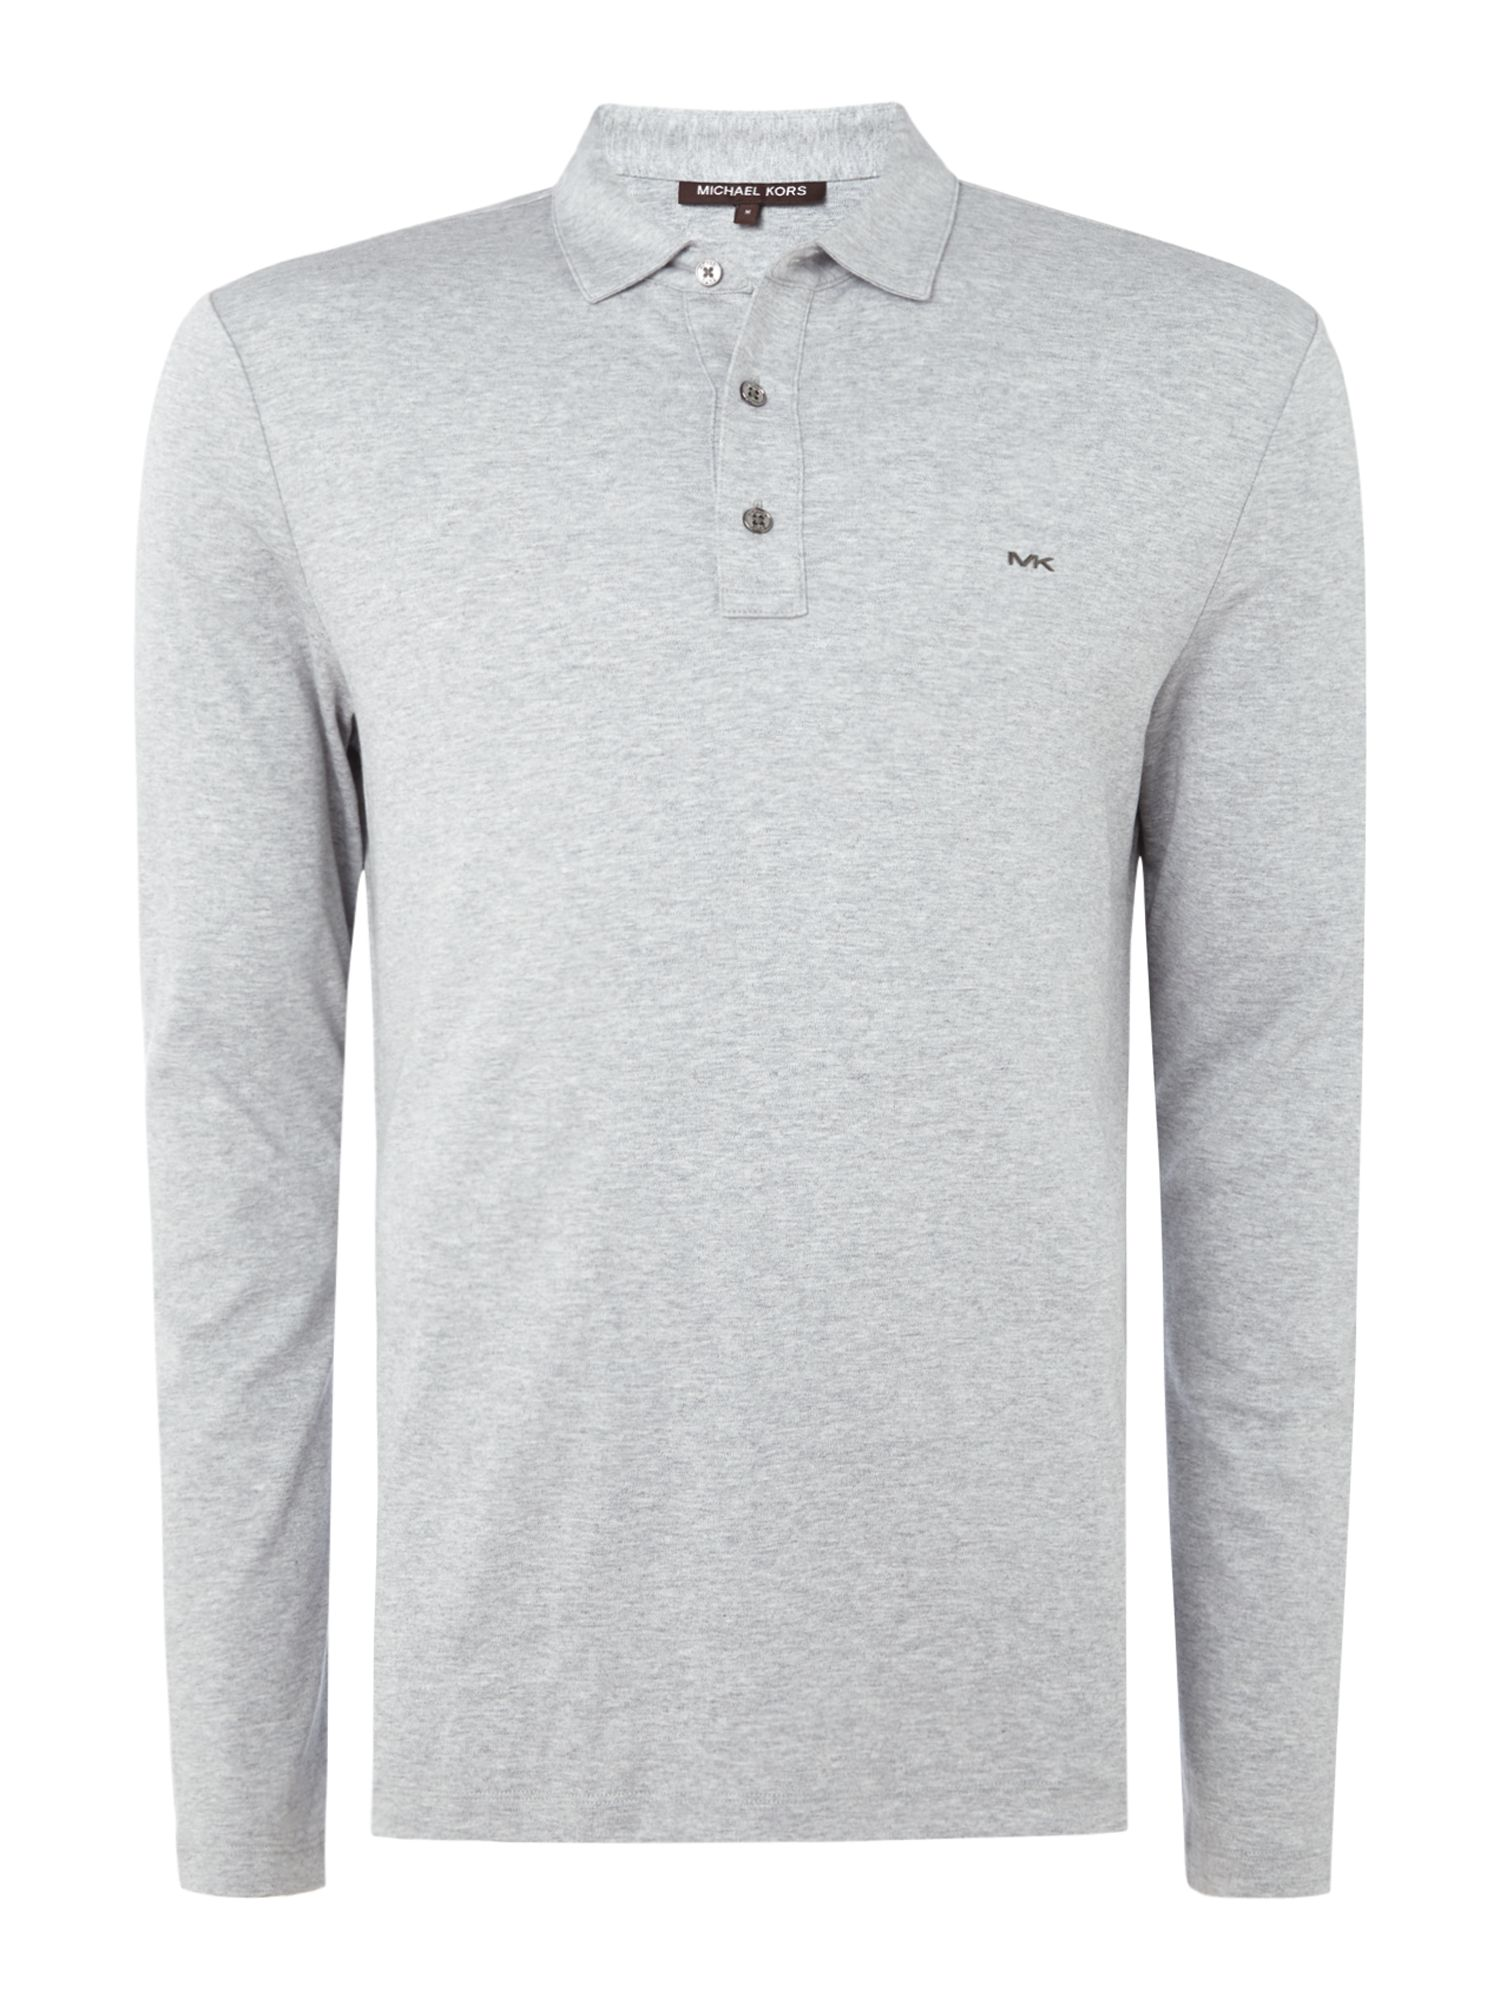 Men's Michael Kors Long Sleeve Slim Fit Polo Shirt, Grey Marl